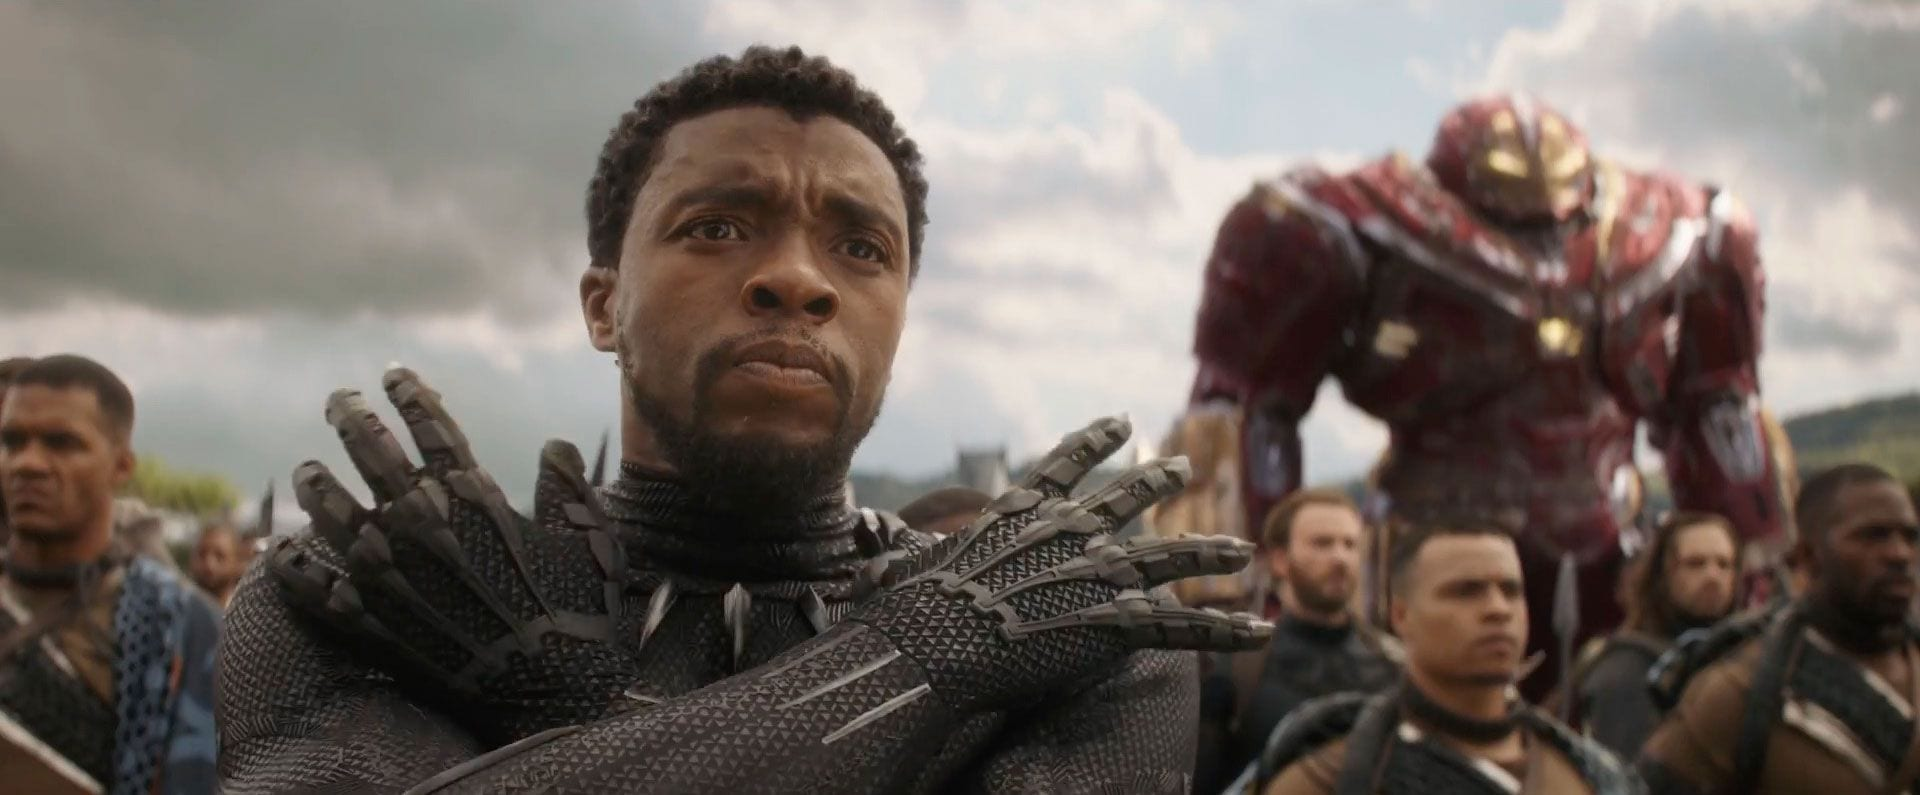 the wakanda scenes in avengers infinity war were shaped by the cast of black panther